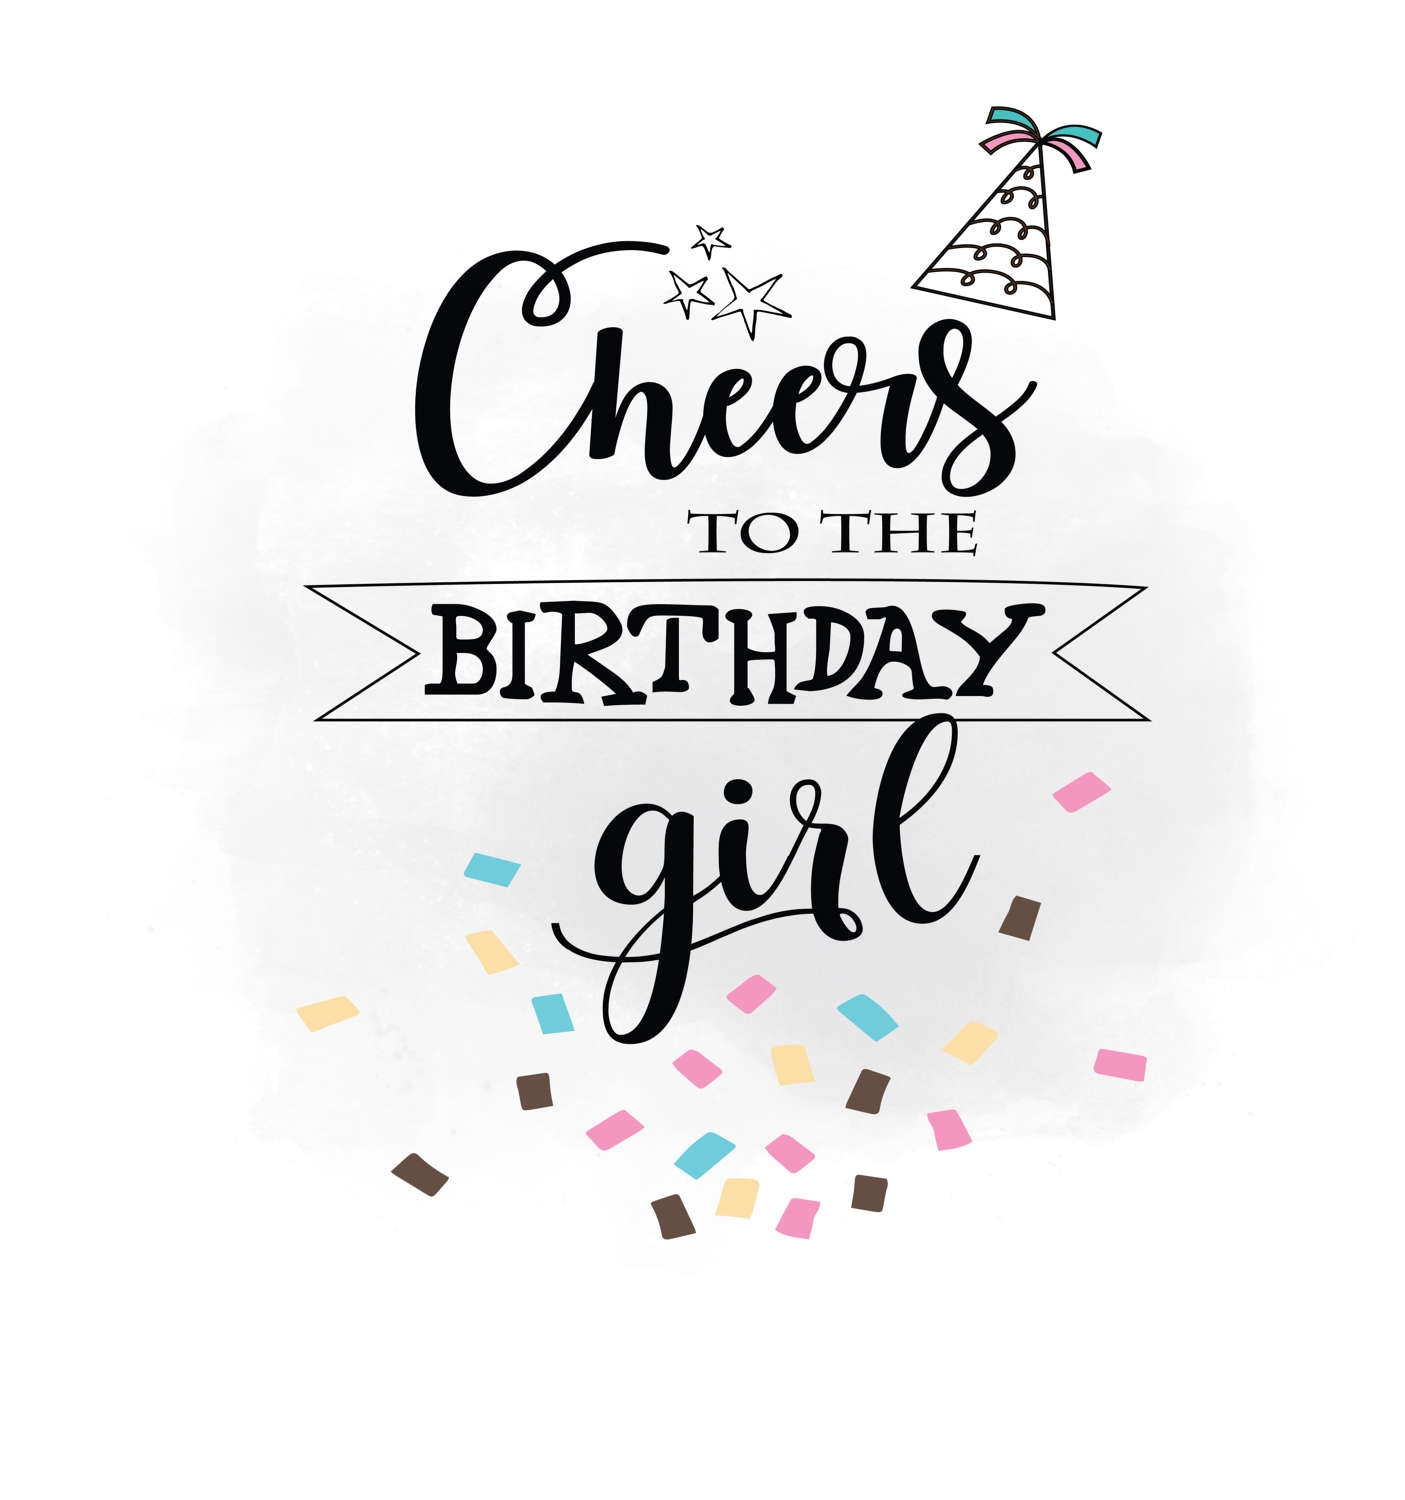 Best ideas about Birthday Girl Quotes . Save or Pin Cheers to Birthday girl SVG clipart Birthday Quote Now.